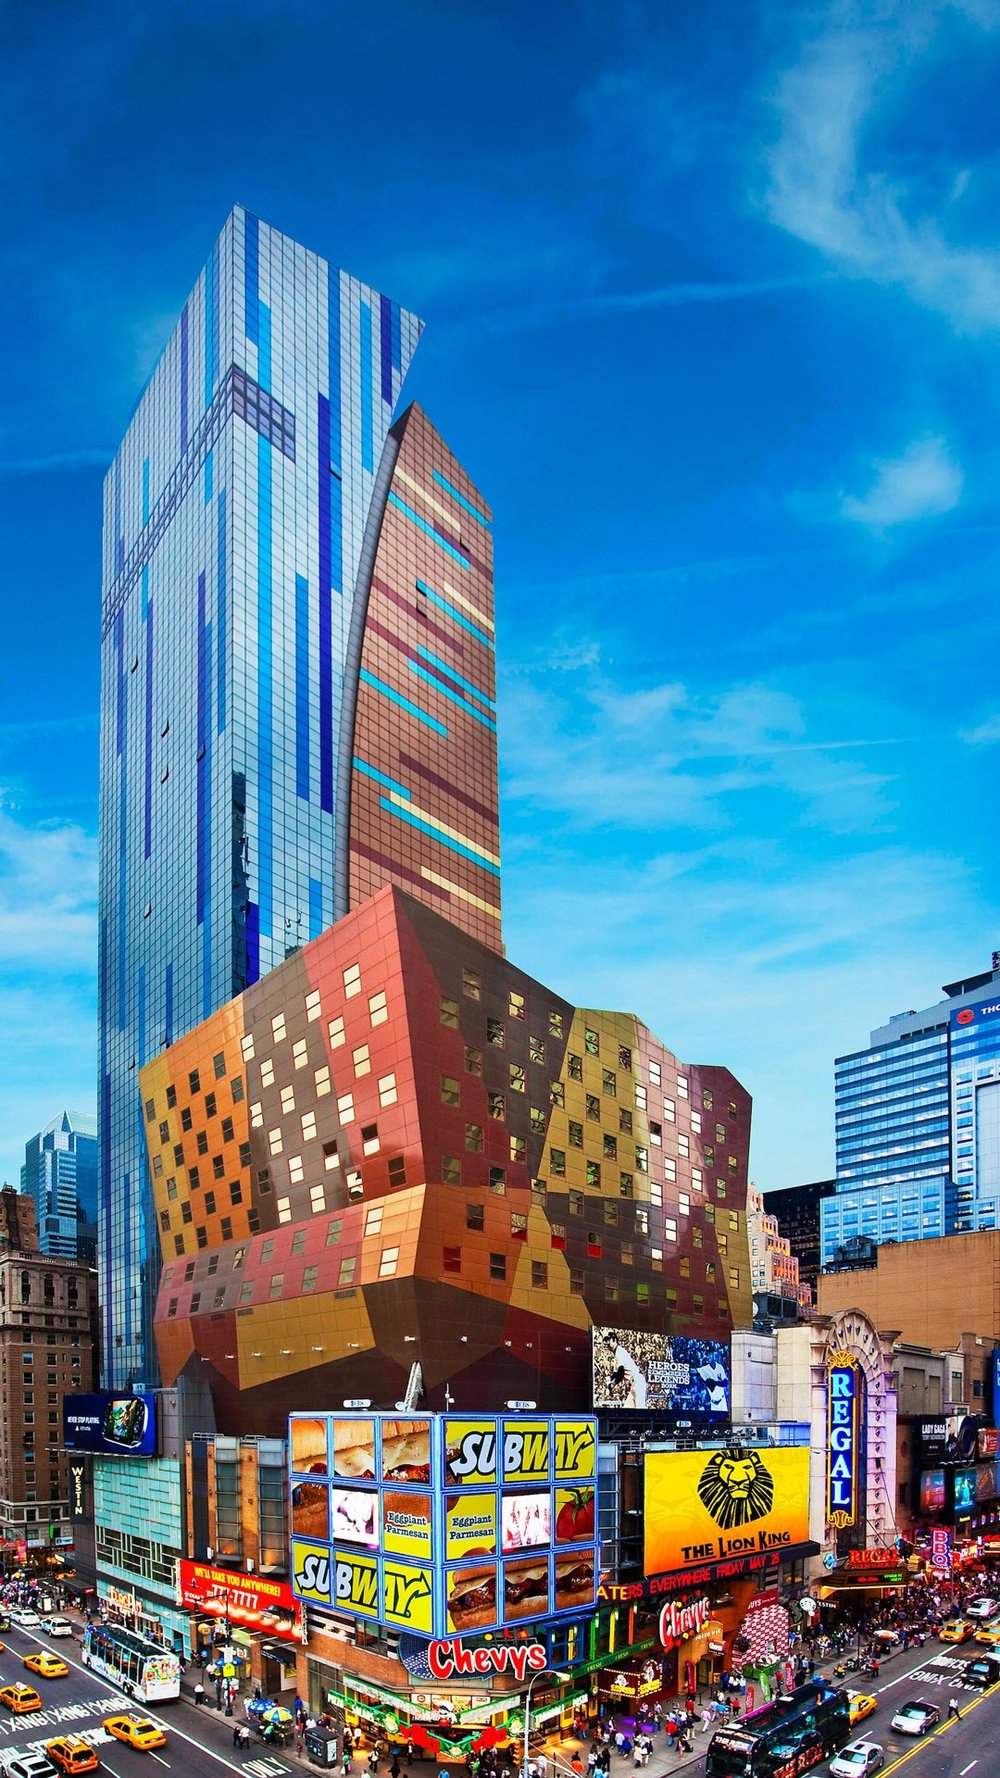 The Westin New York at Times Square, designed by the firm Arquitectonica. The hotel anchors the 42nd Street Development project on 8th Avenue between 42nd and 43rd Streets. Credit: The Westin New York at Times Square